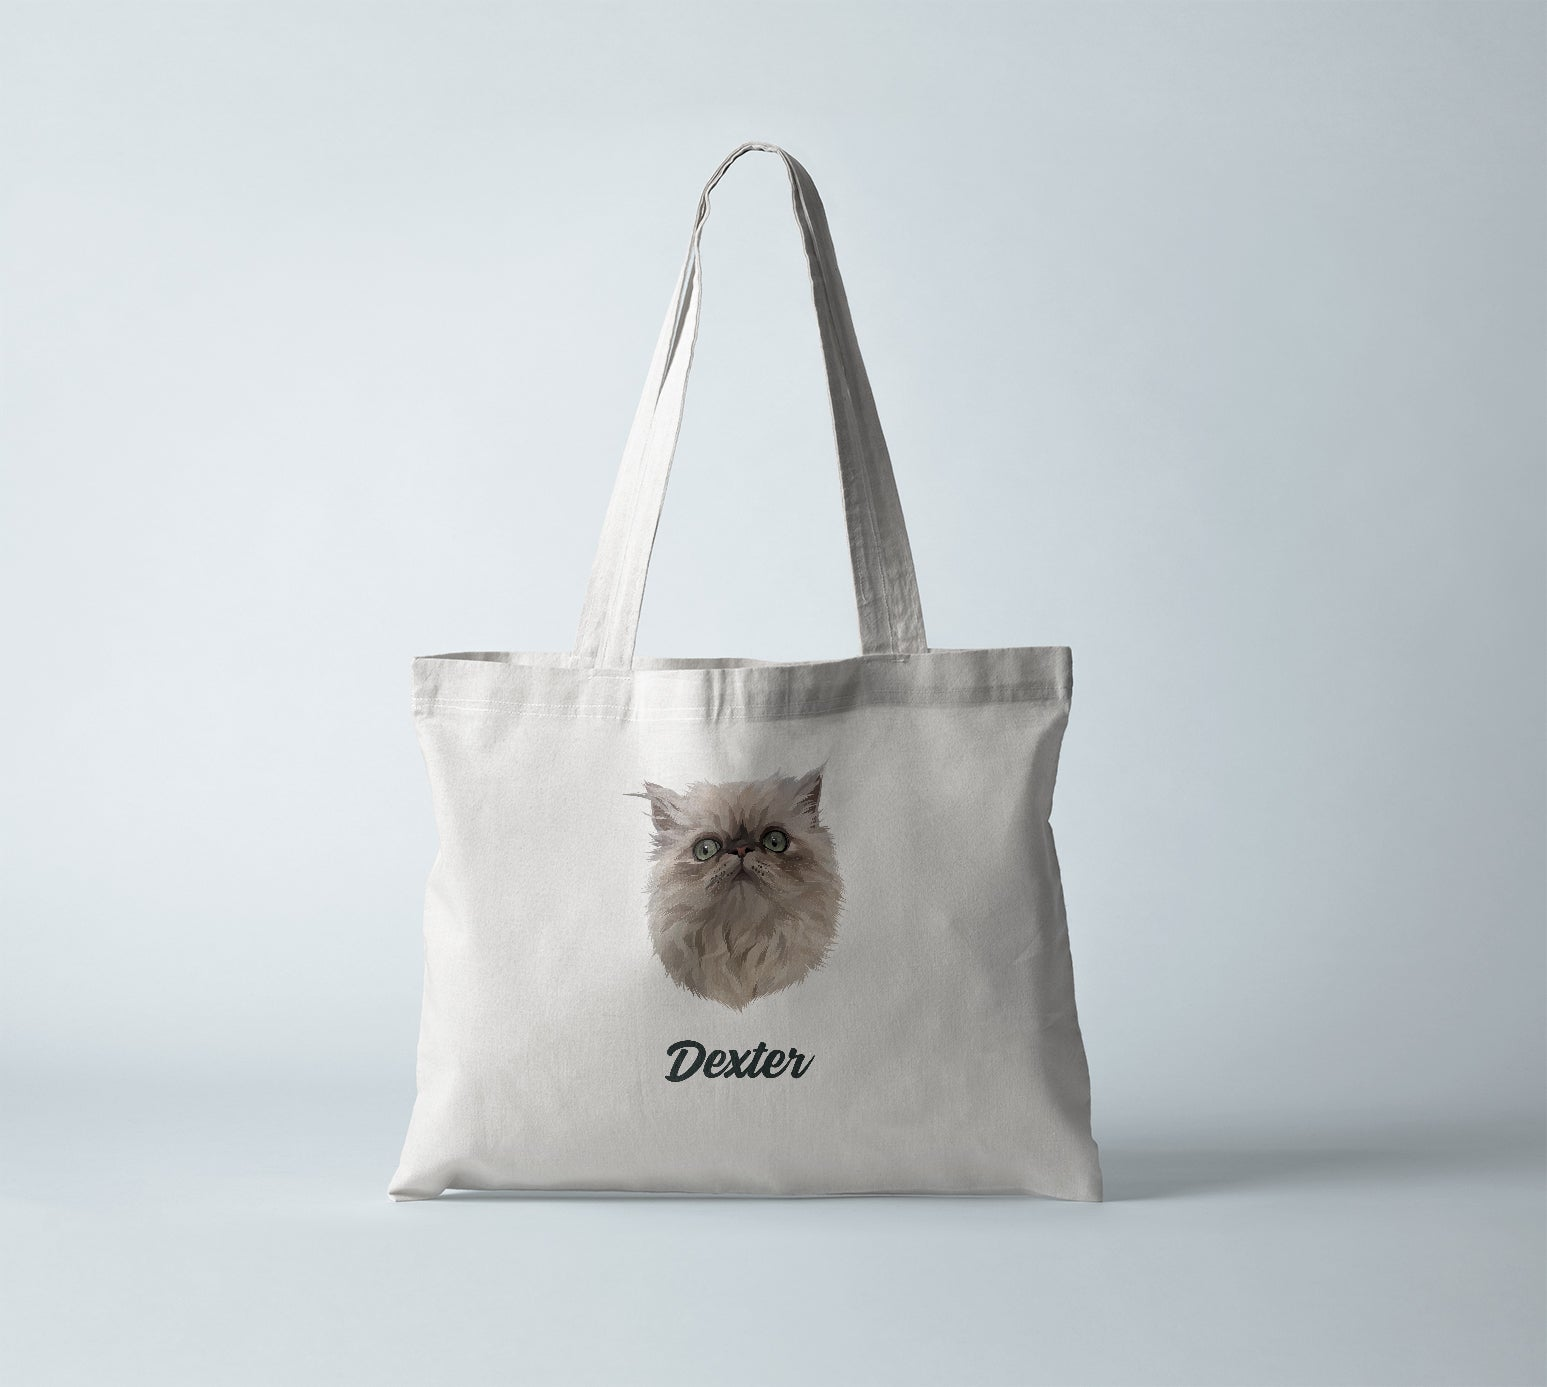 Canvas tote bag in bright white, with personalized pet portrait of a cat with its name in black.